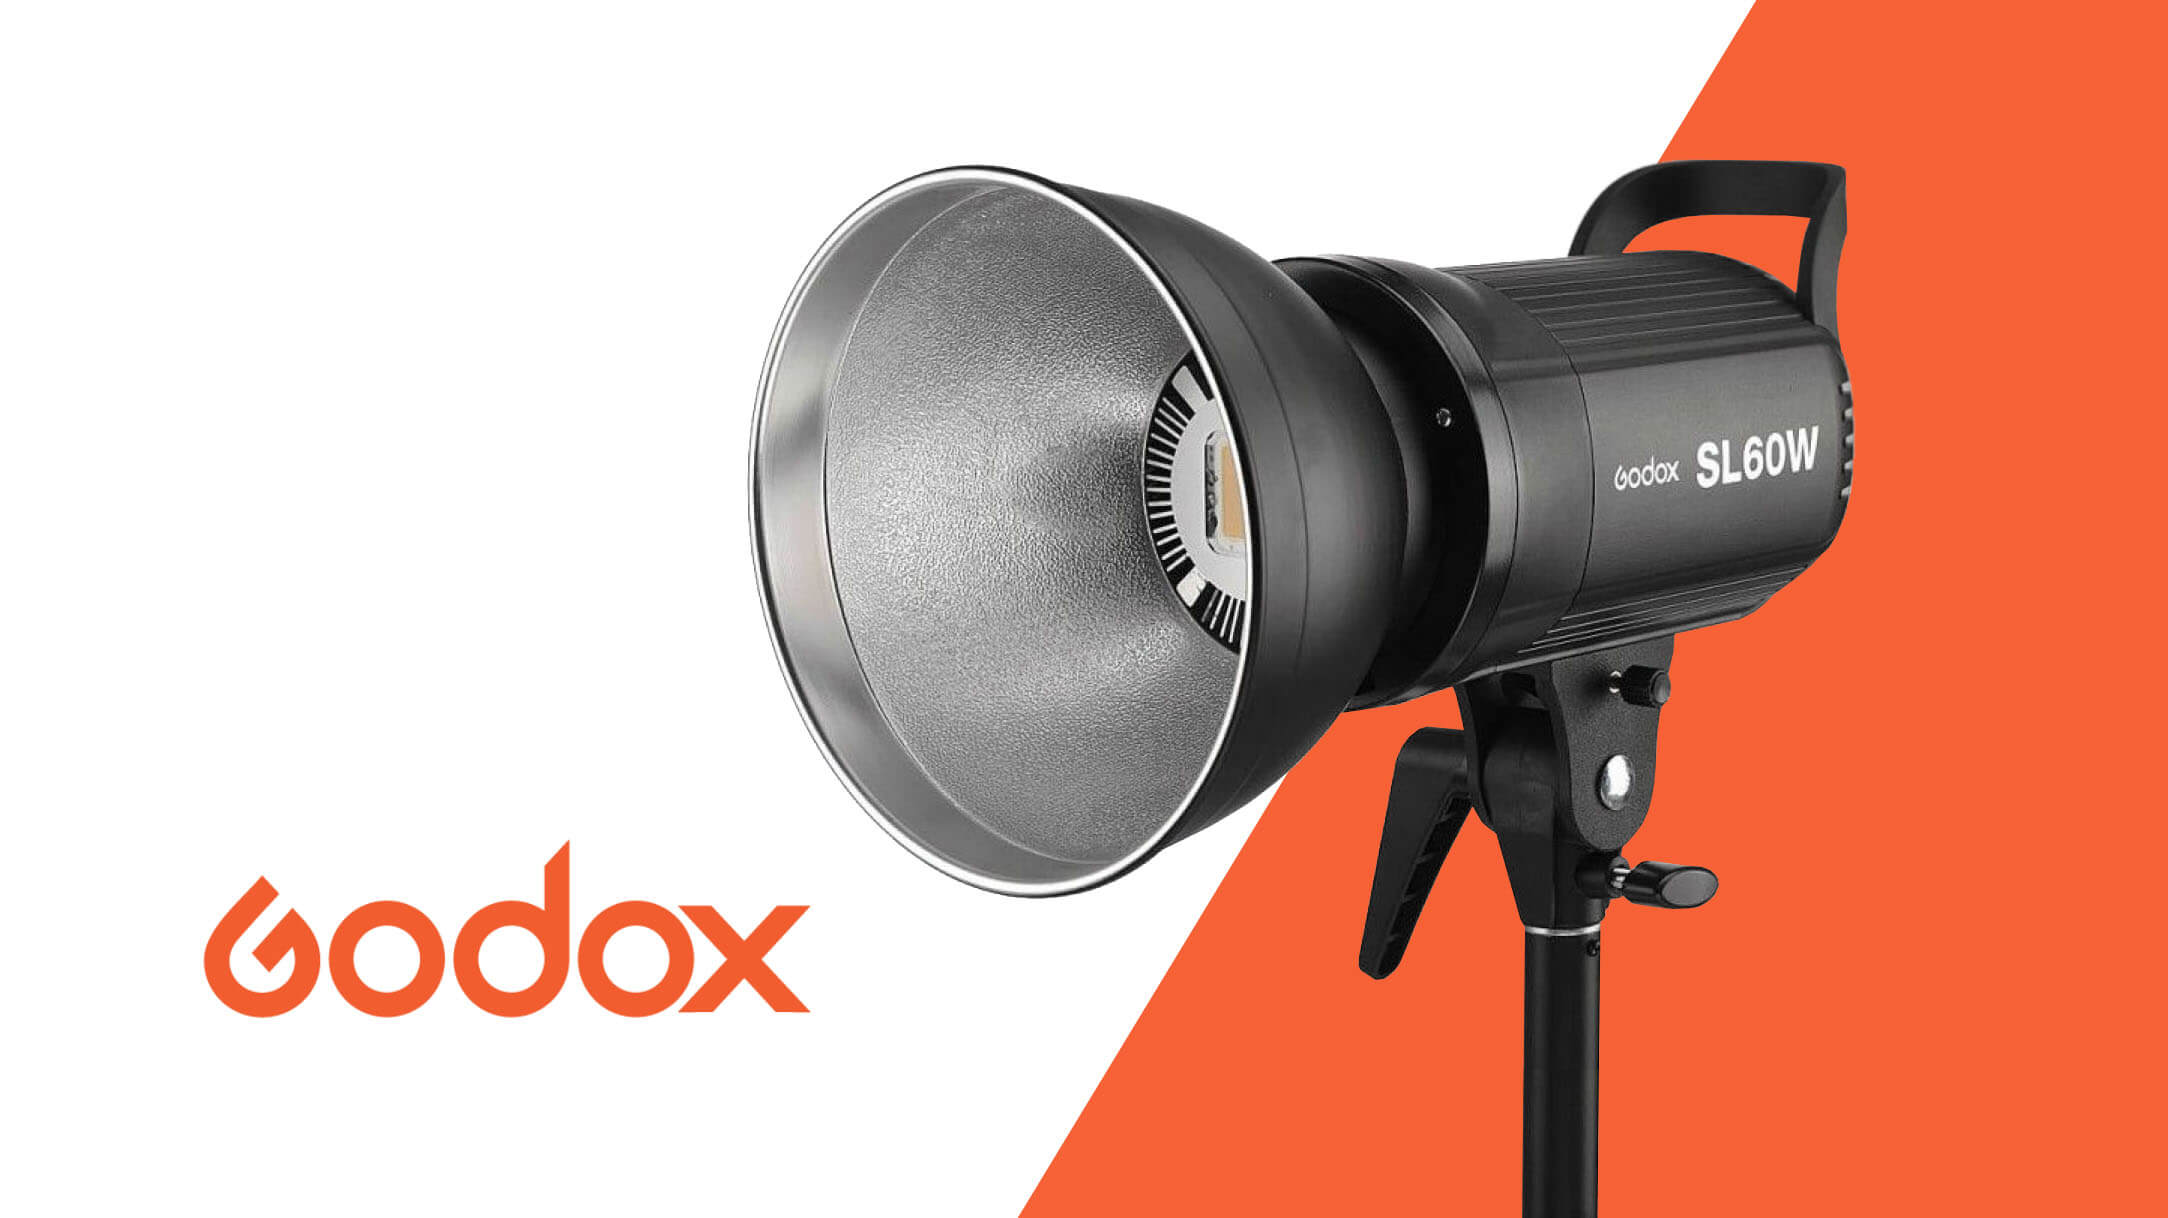 Godox SL-60W film light, test and review